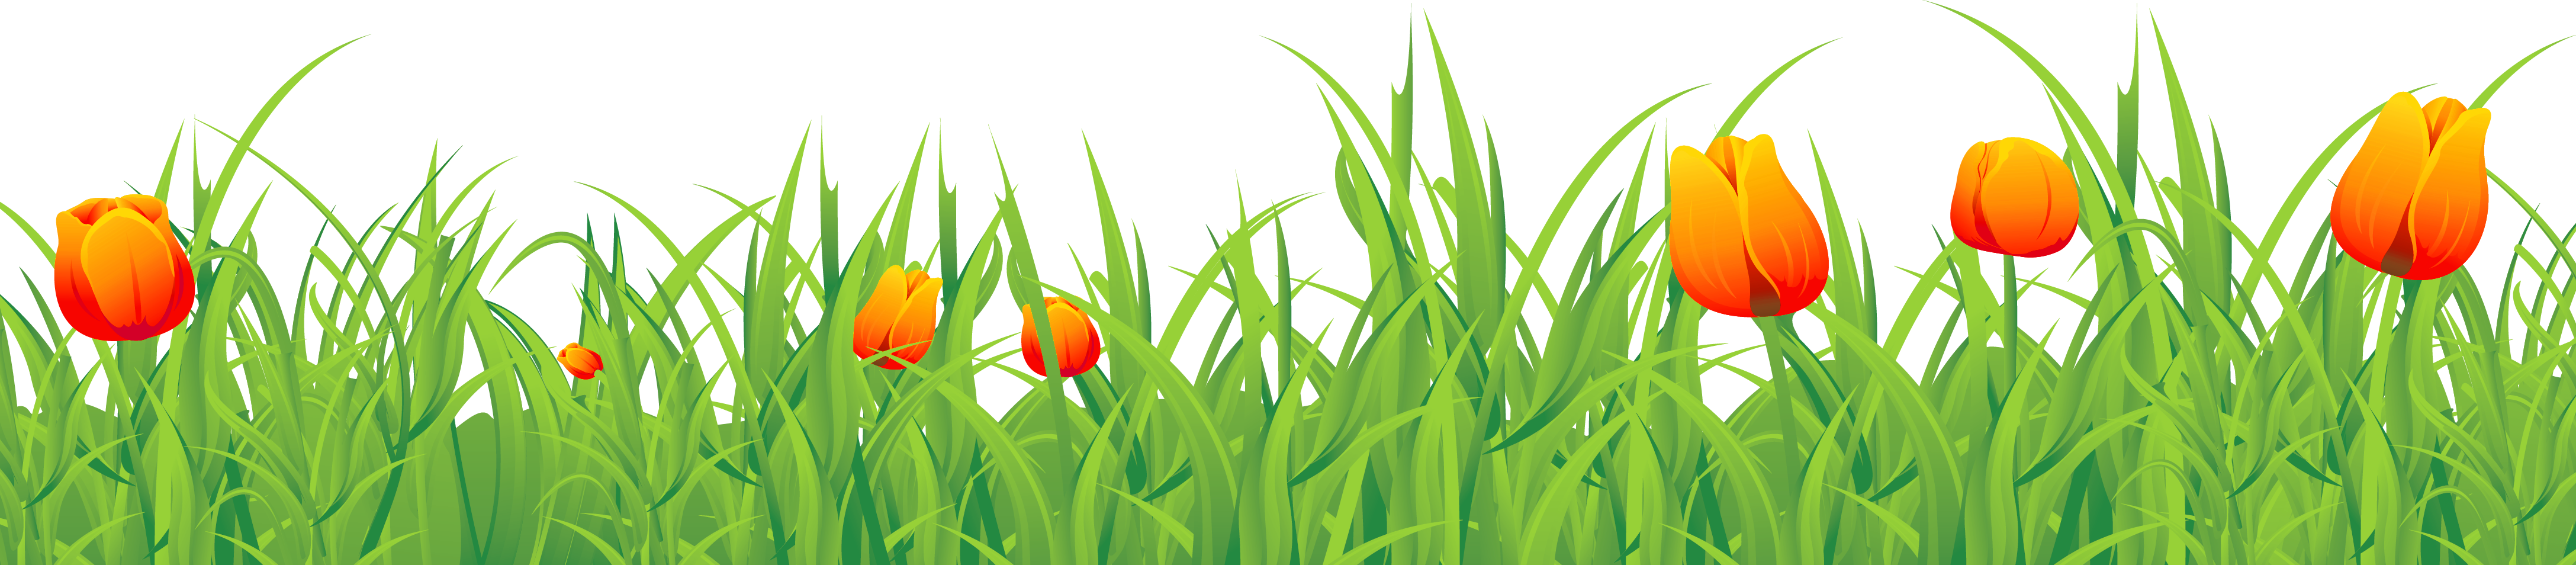 Grass ground with tulips. Fence clipart tulip